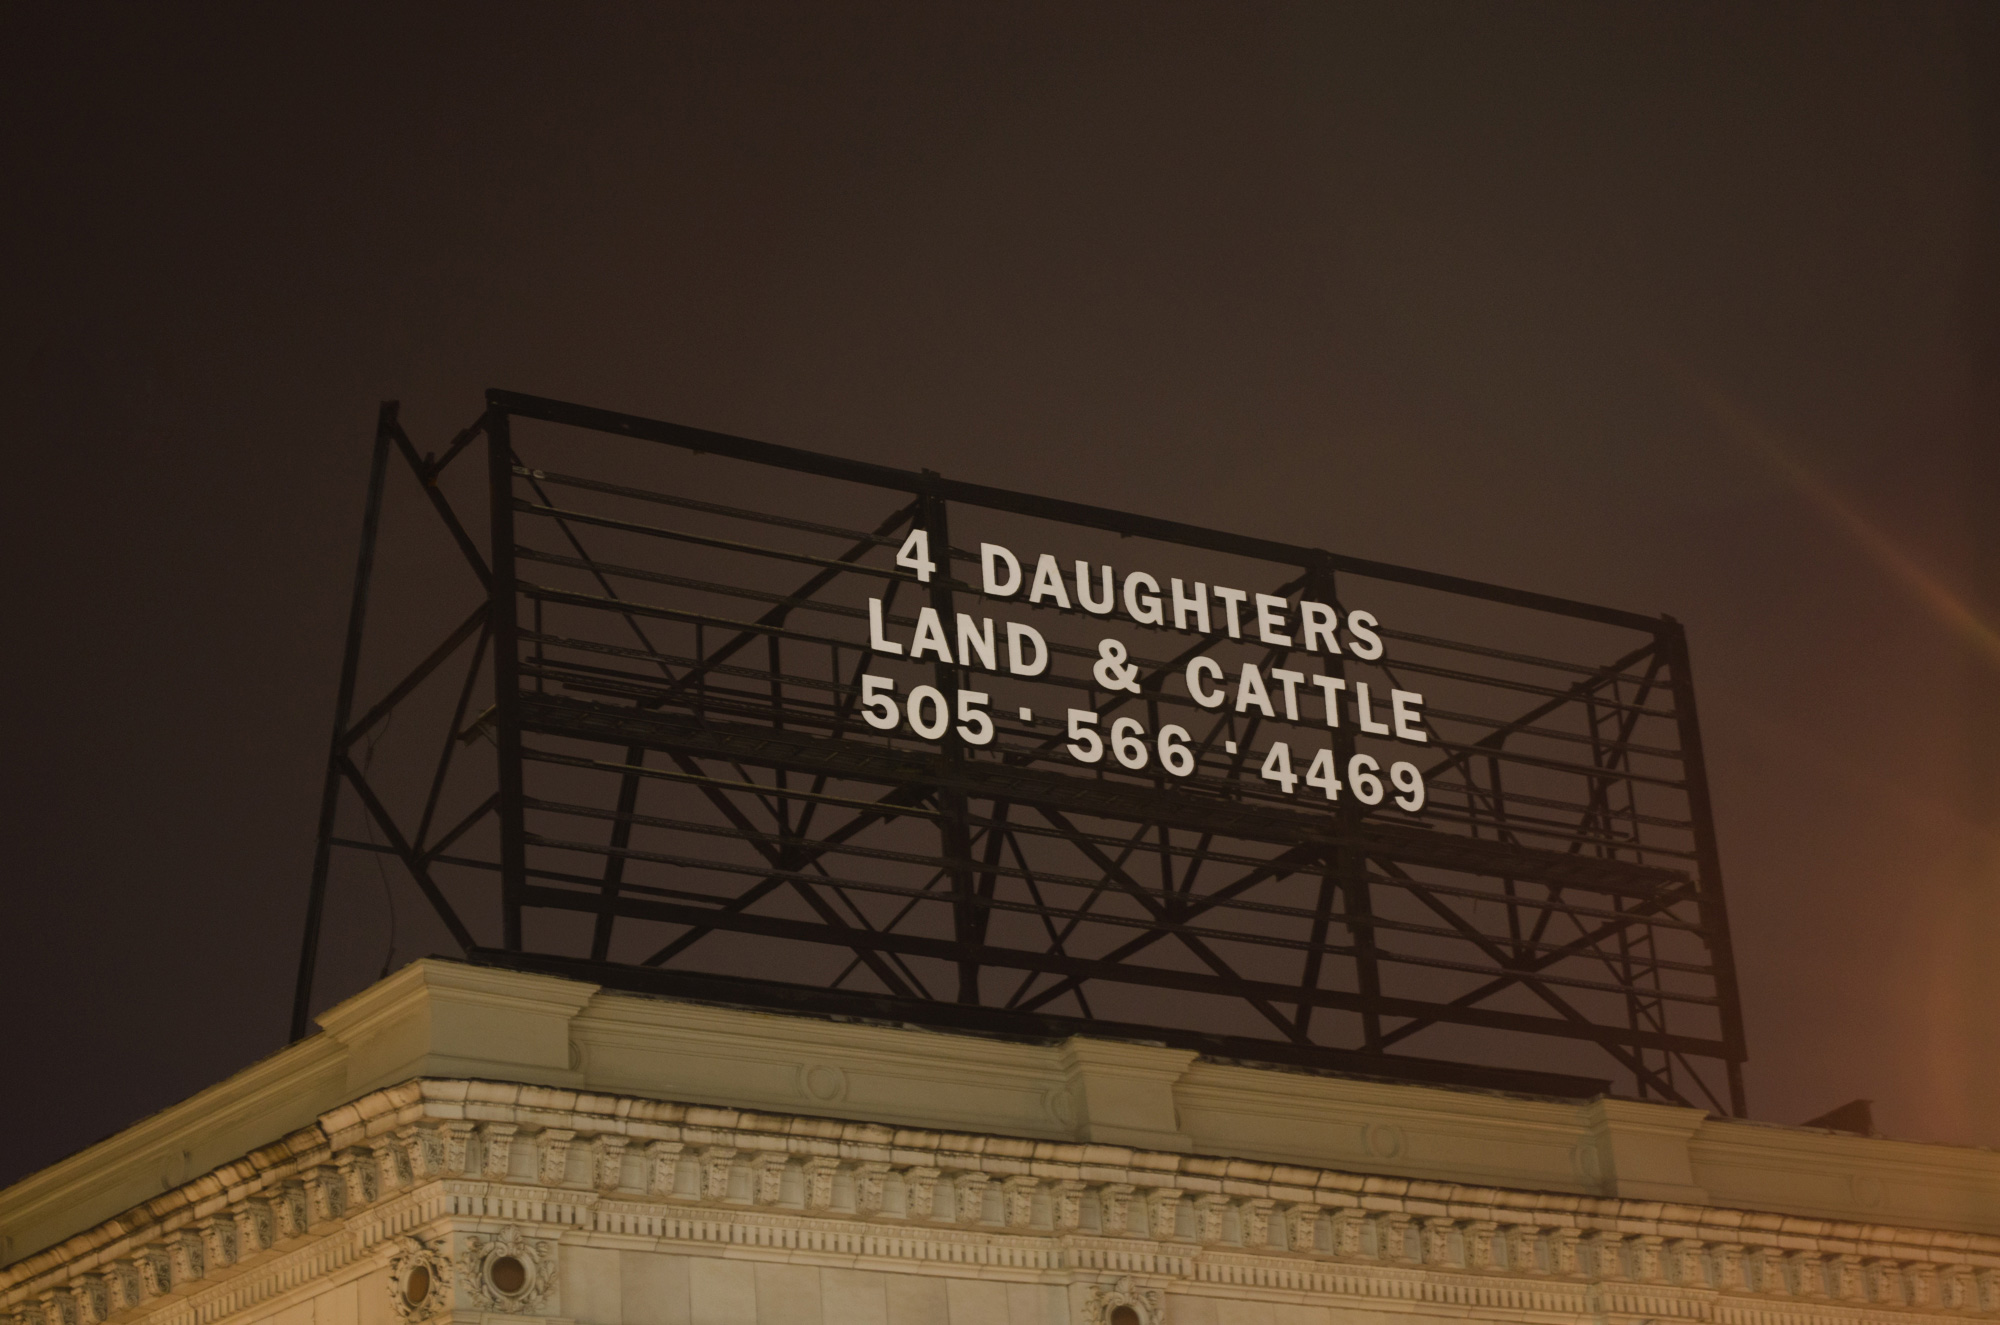 4 Daughters Land & Cattle